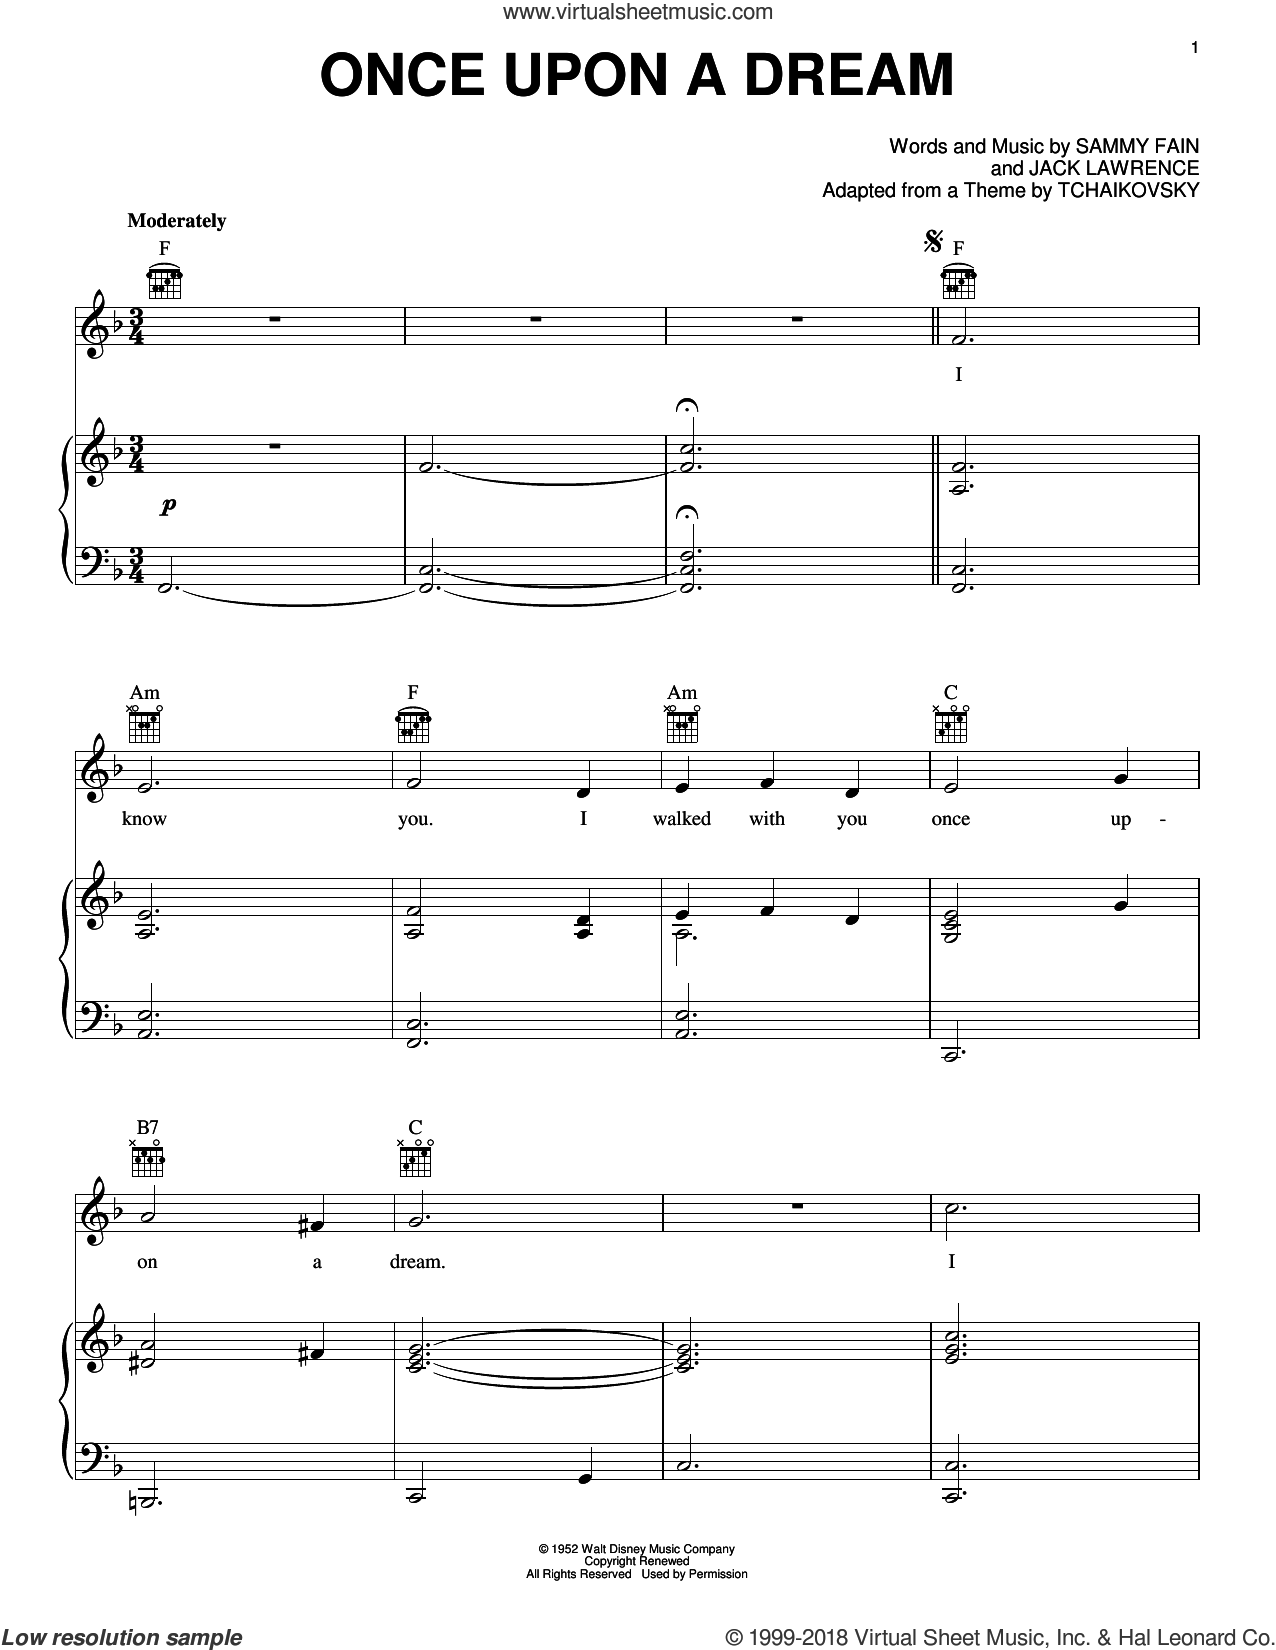 Once Upon A Dream sheet music for piano solo by James Newton Howard, Jack Lawrence and Sammy Fain, intermediate